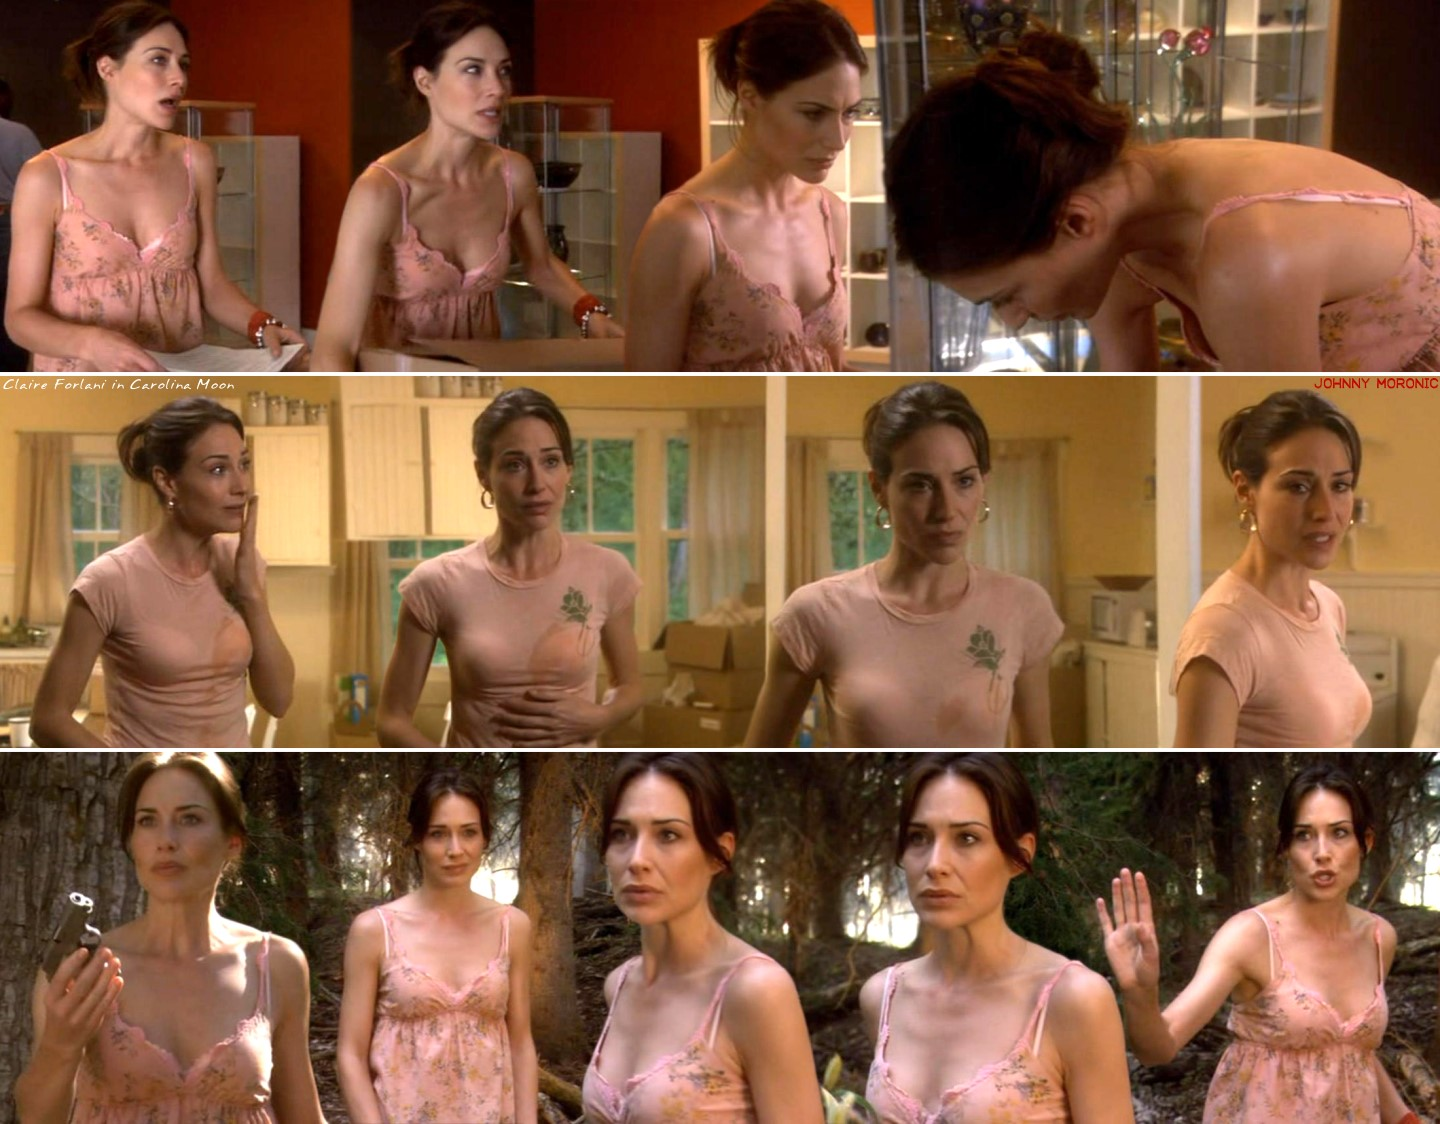 http://pictures.platinum-celebs.com/claire-forlani-nude-photo.jpg